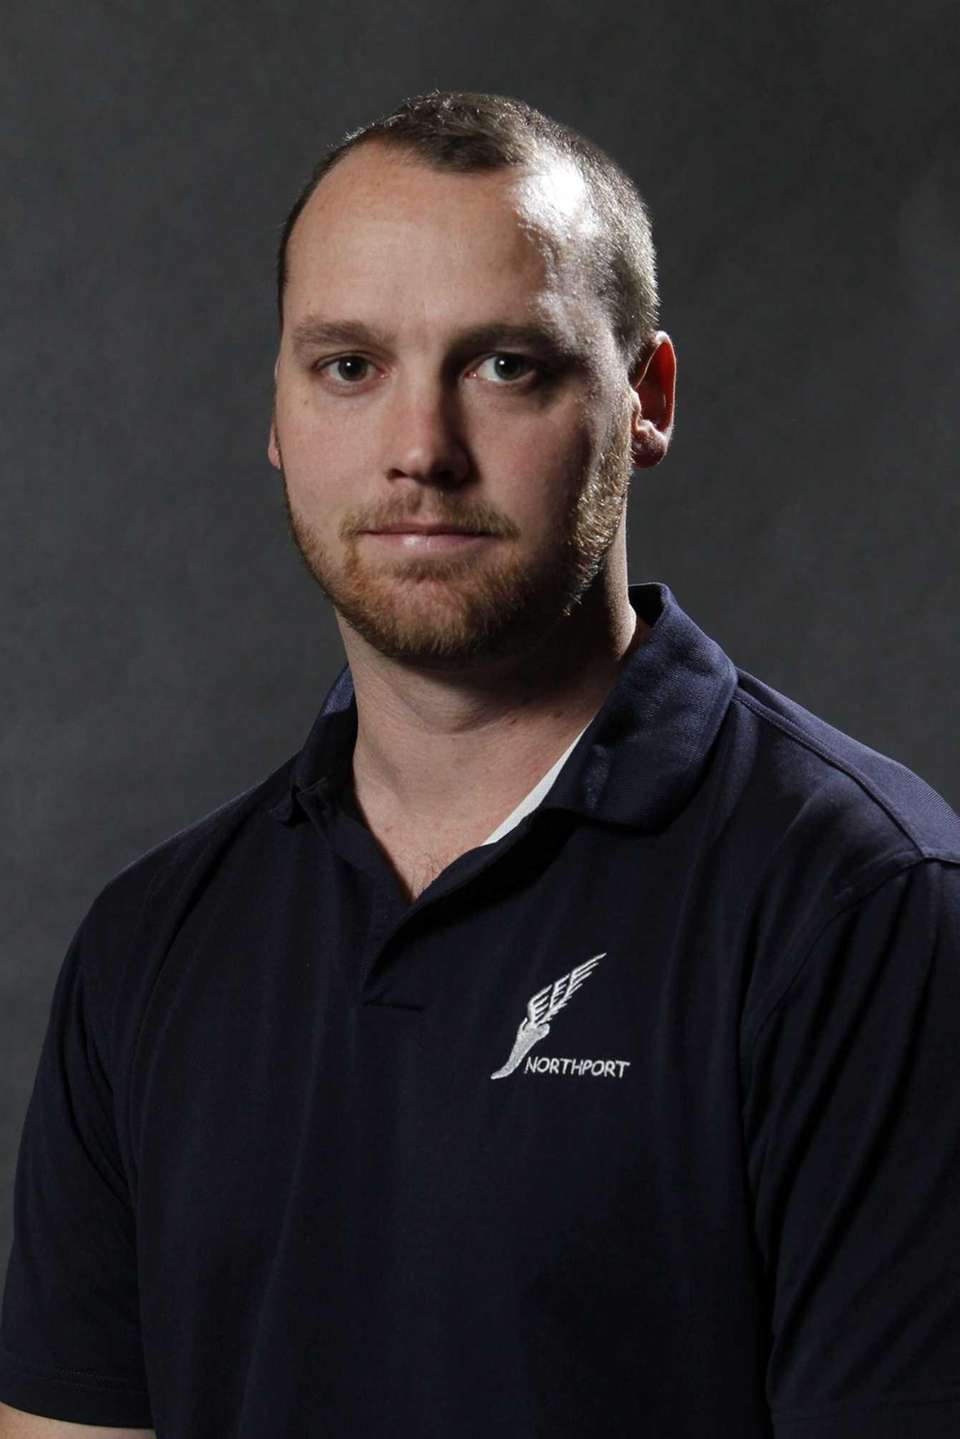 COACH OF THE YEAR: JASON STROM Northport